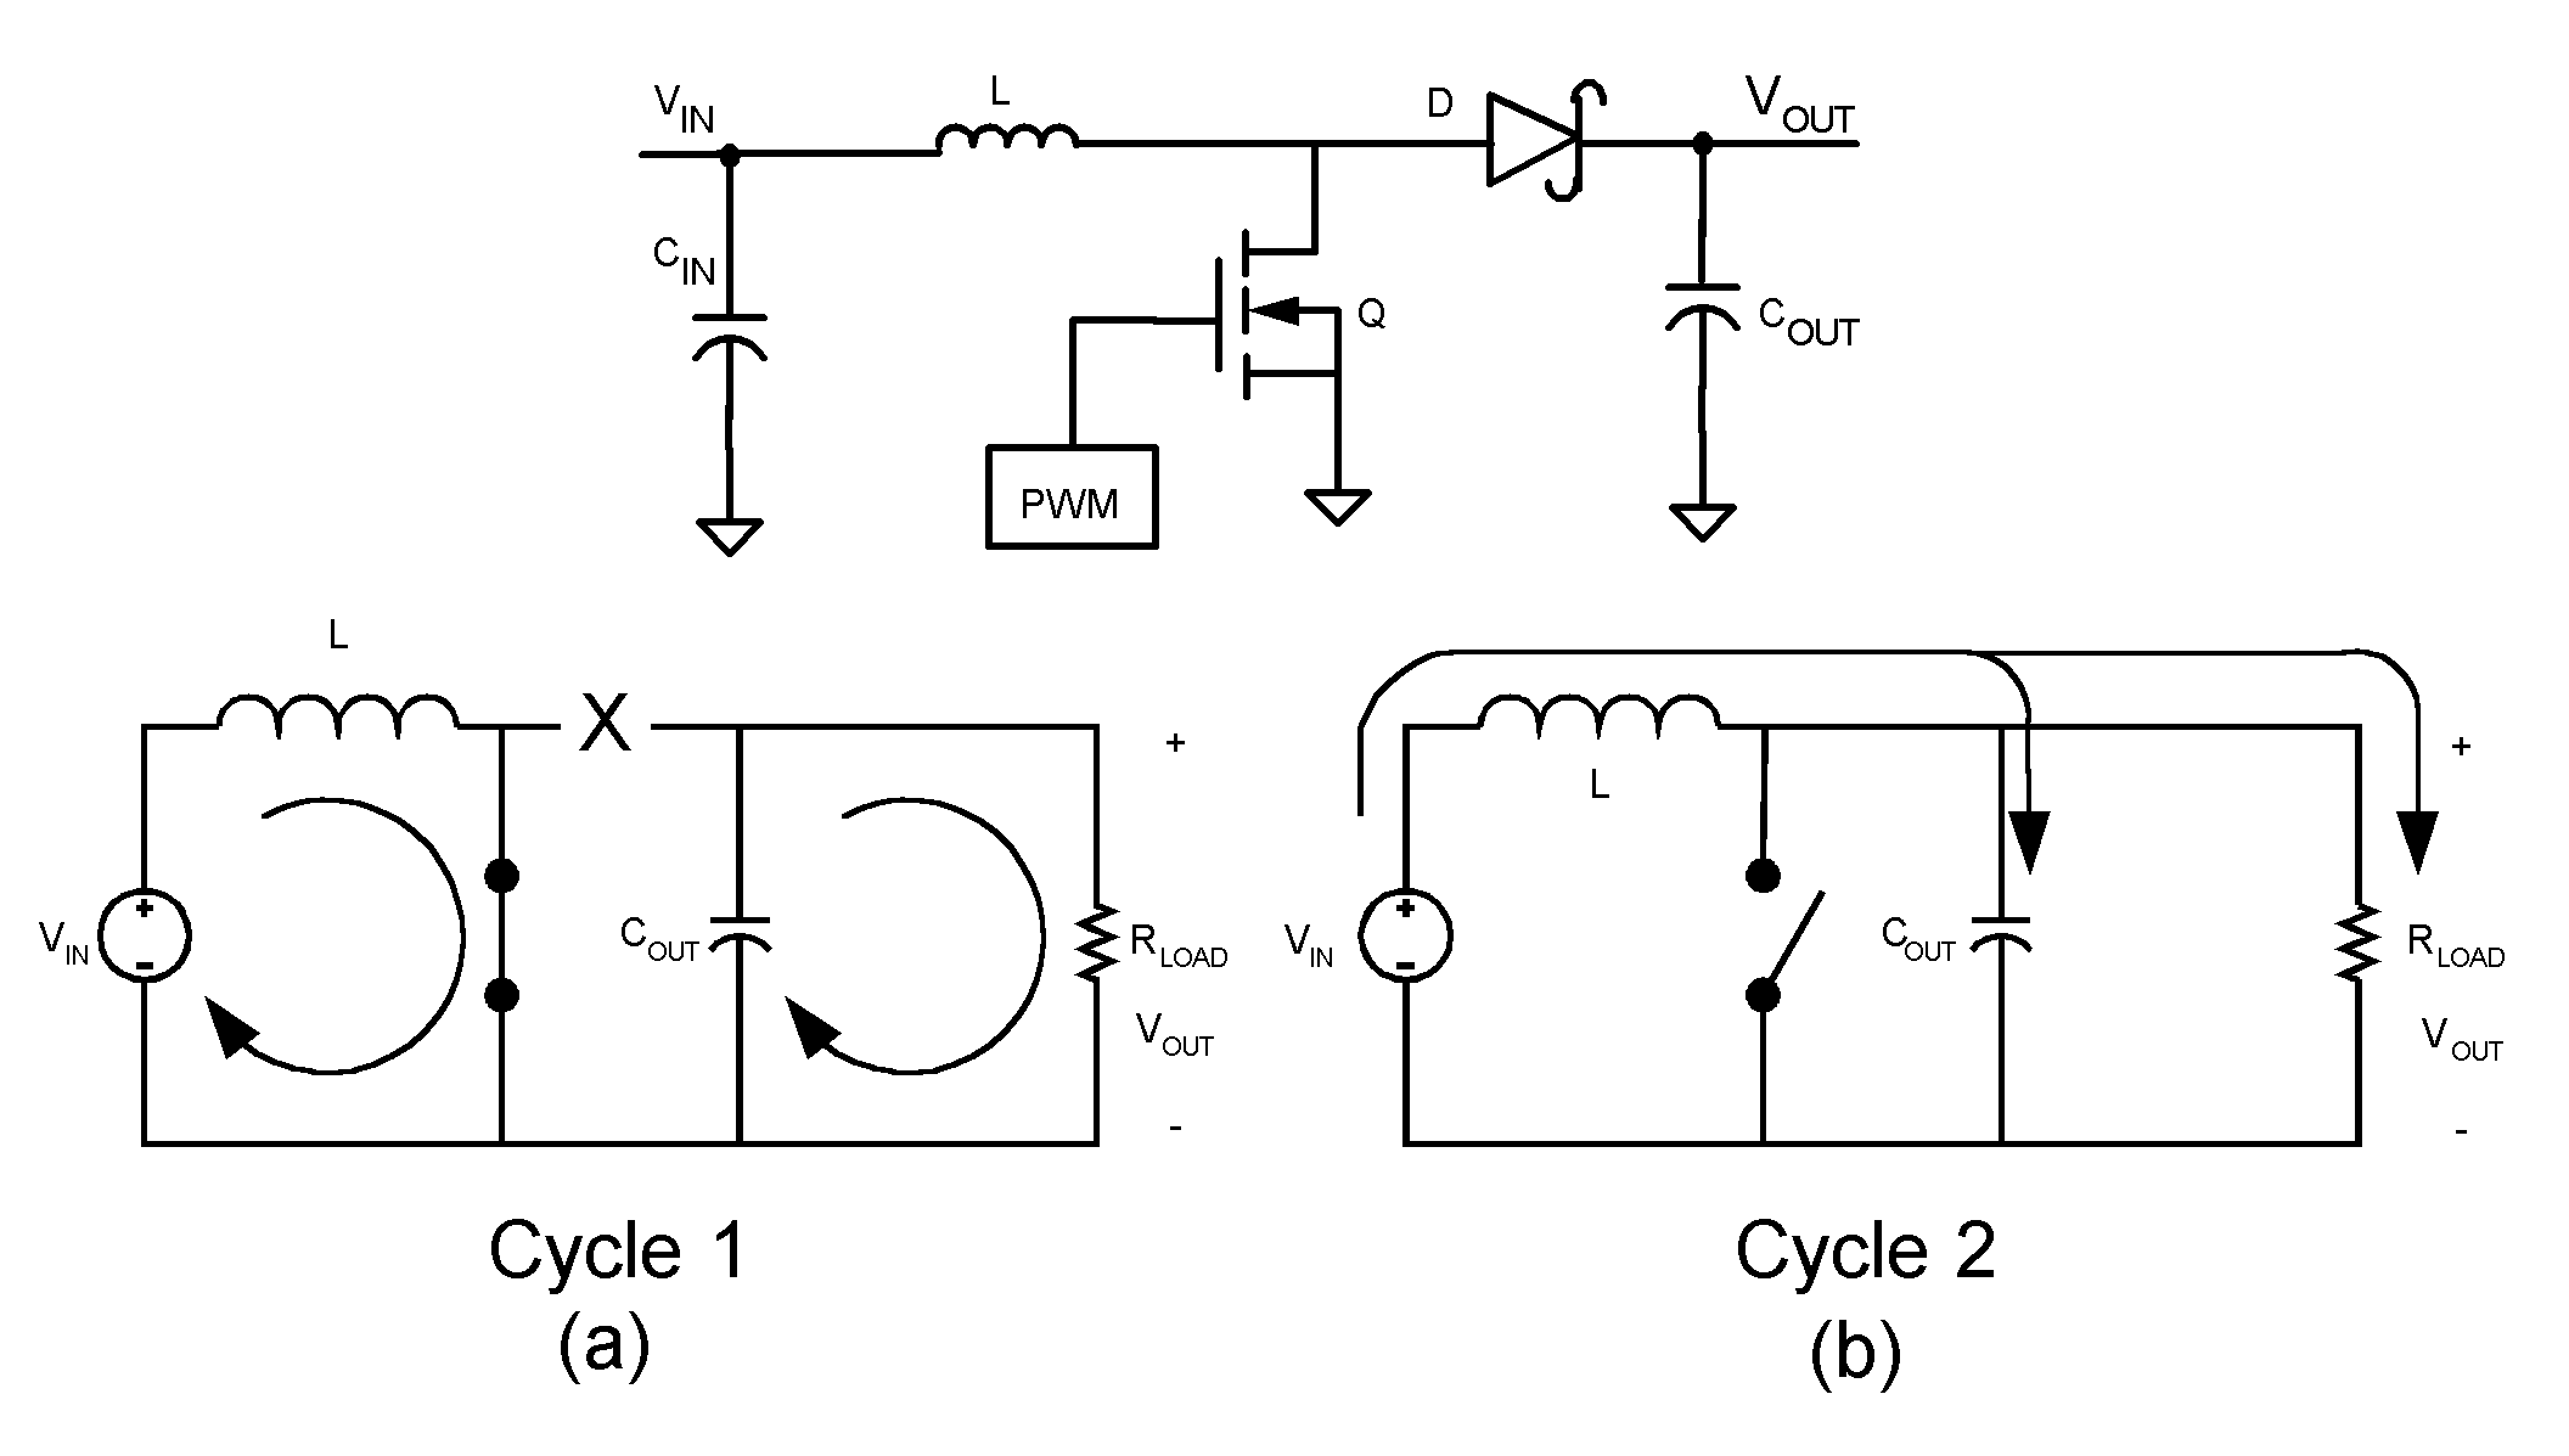 Lm3478 Use Of Inductor In A Circuit 10135522